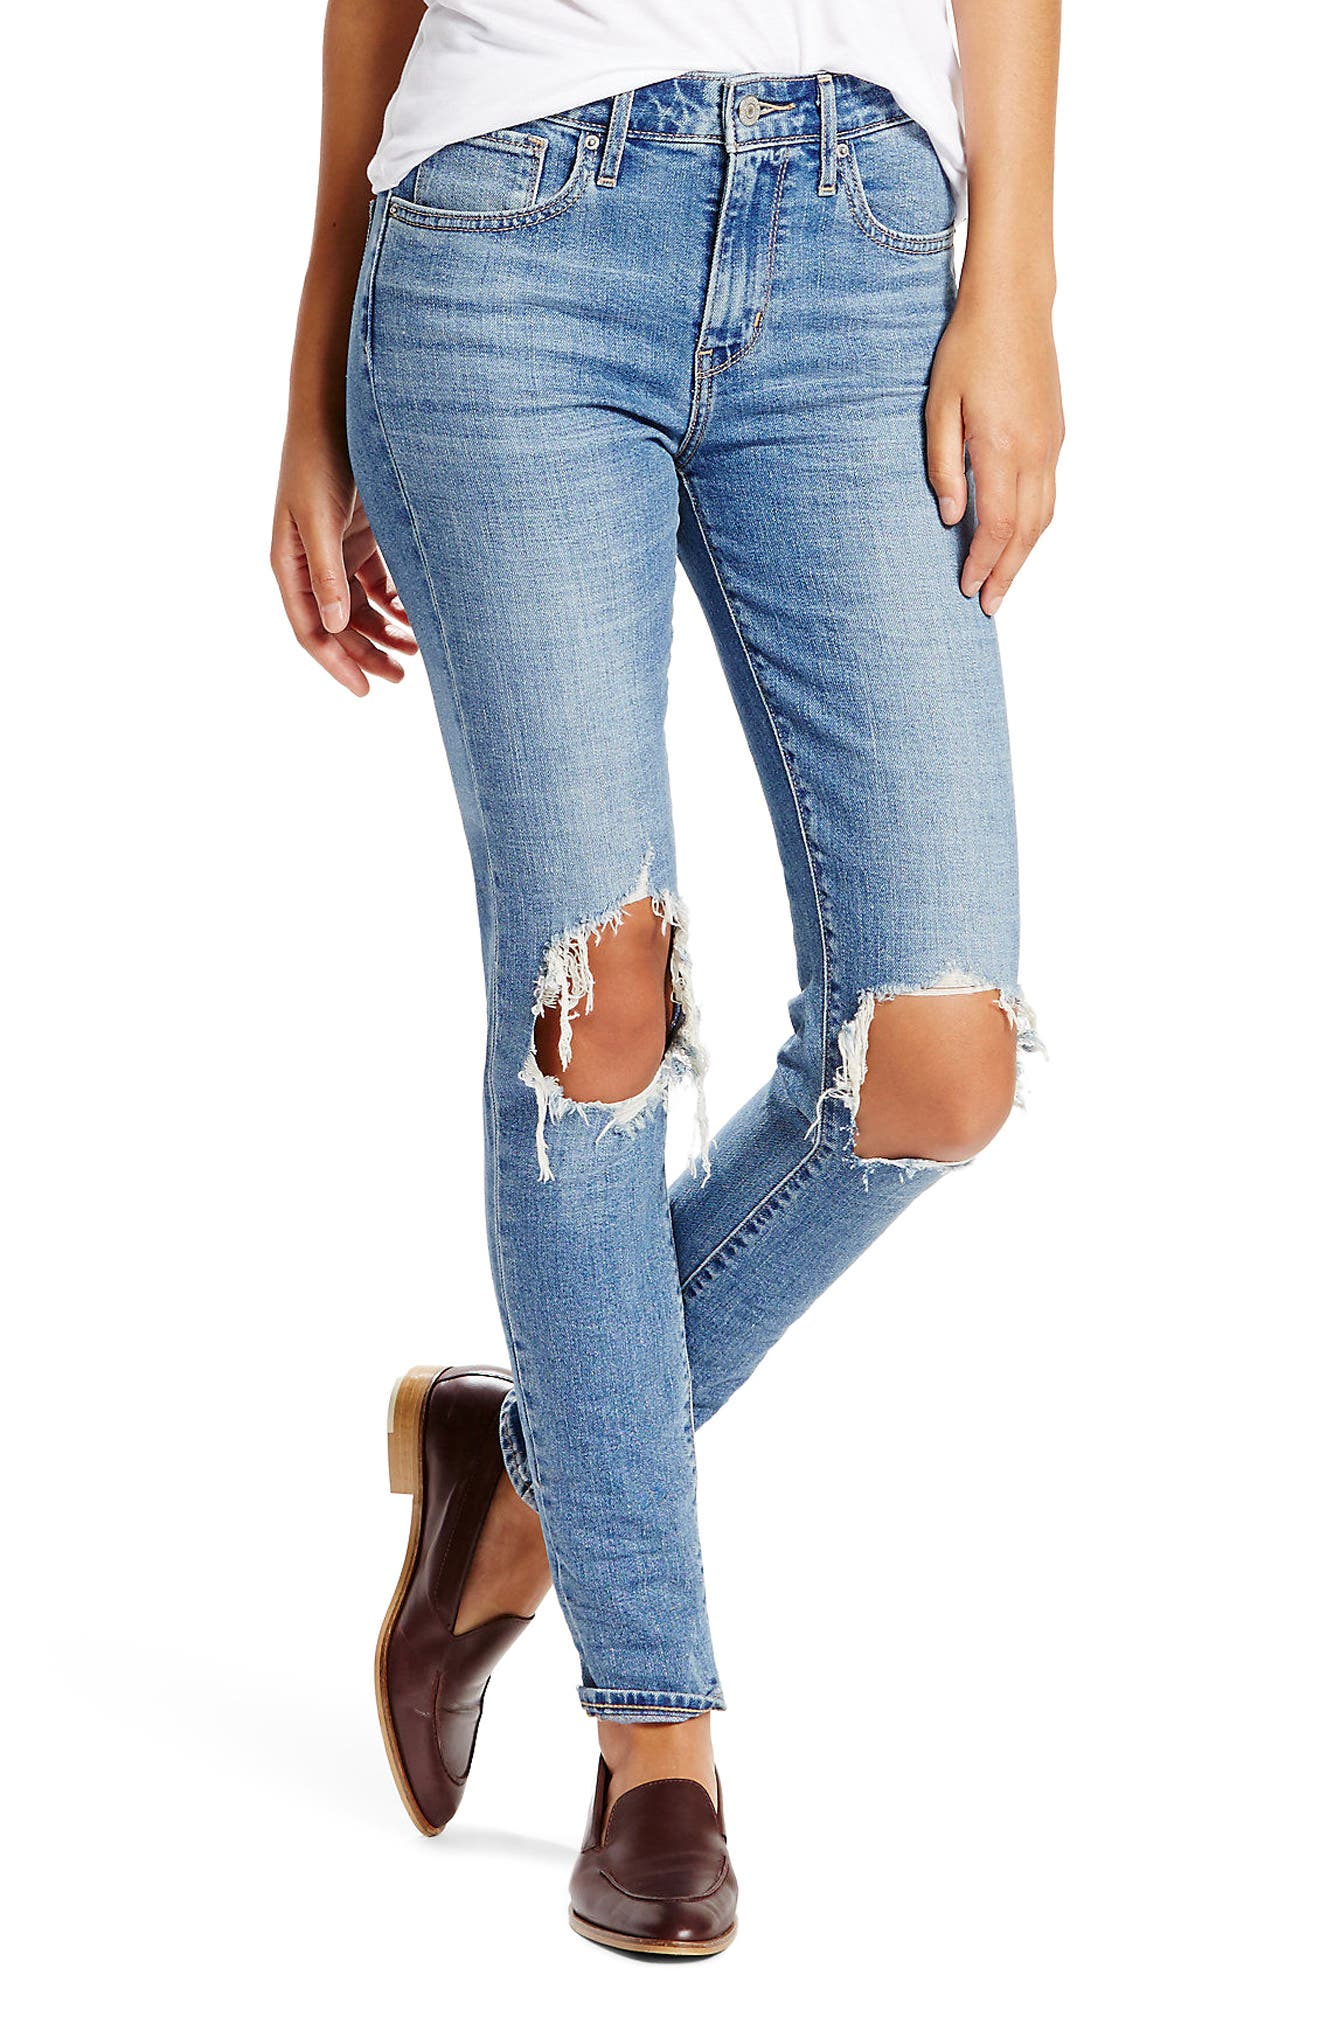 721 Ripped High Waist Skinny Jeans by Levi's®